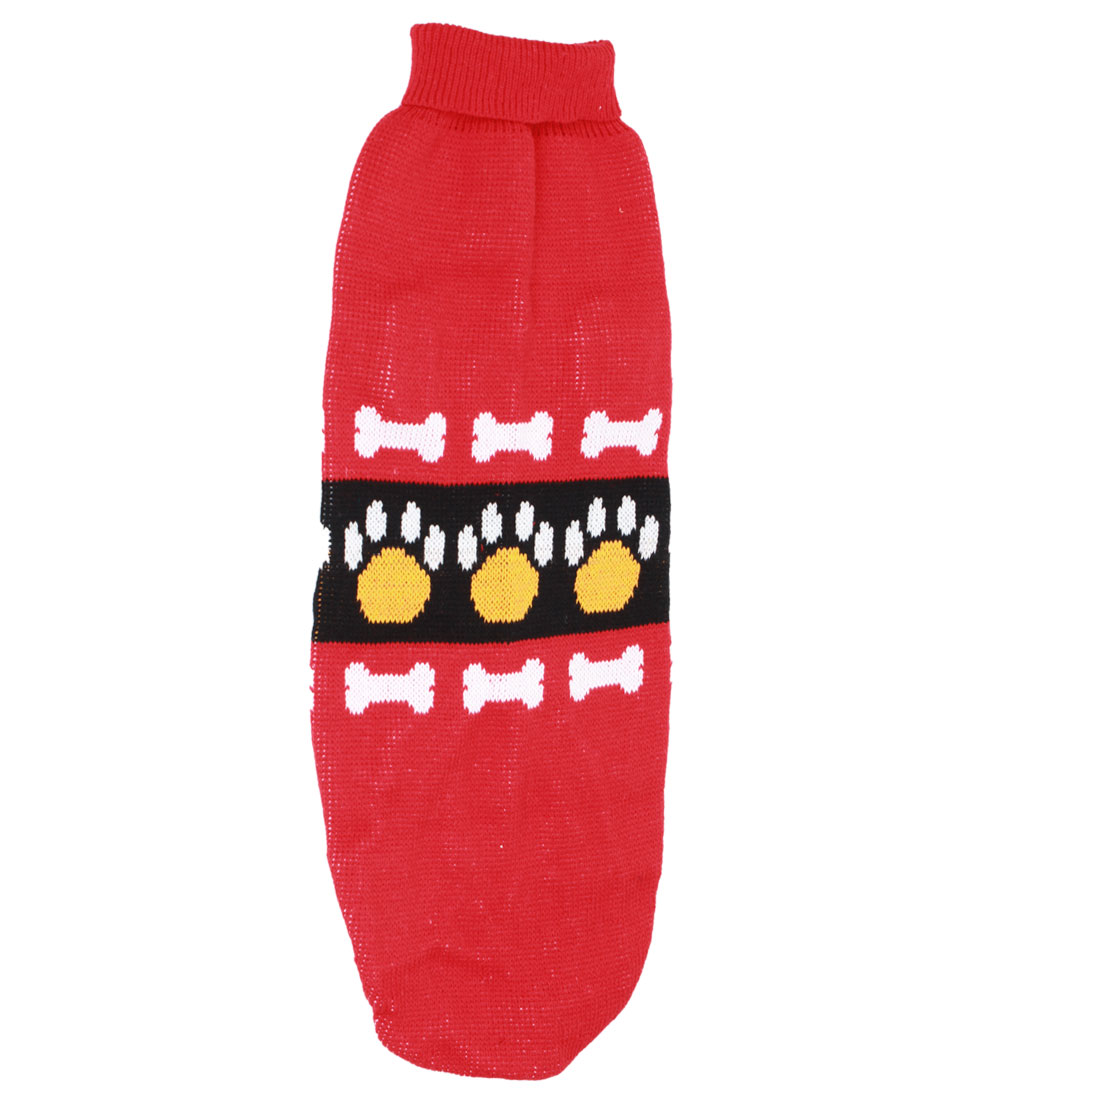 Pet Dog Doggie Bone Claw Print Ribbed Cuff Knitwear Turtleneck Apparel Sweater Colorful Size L